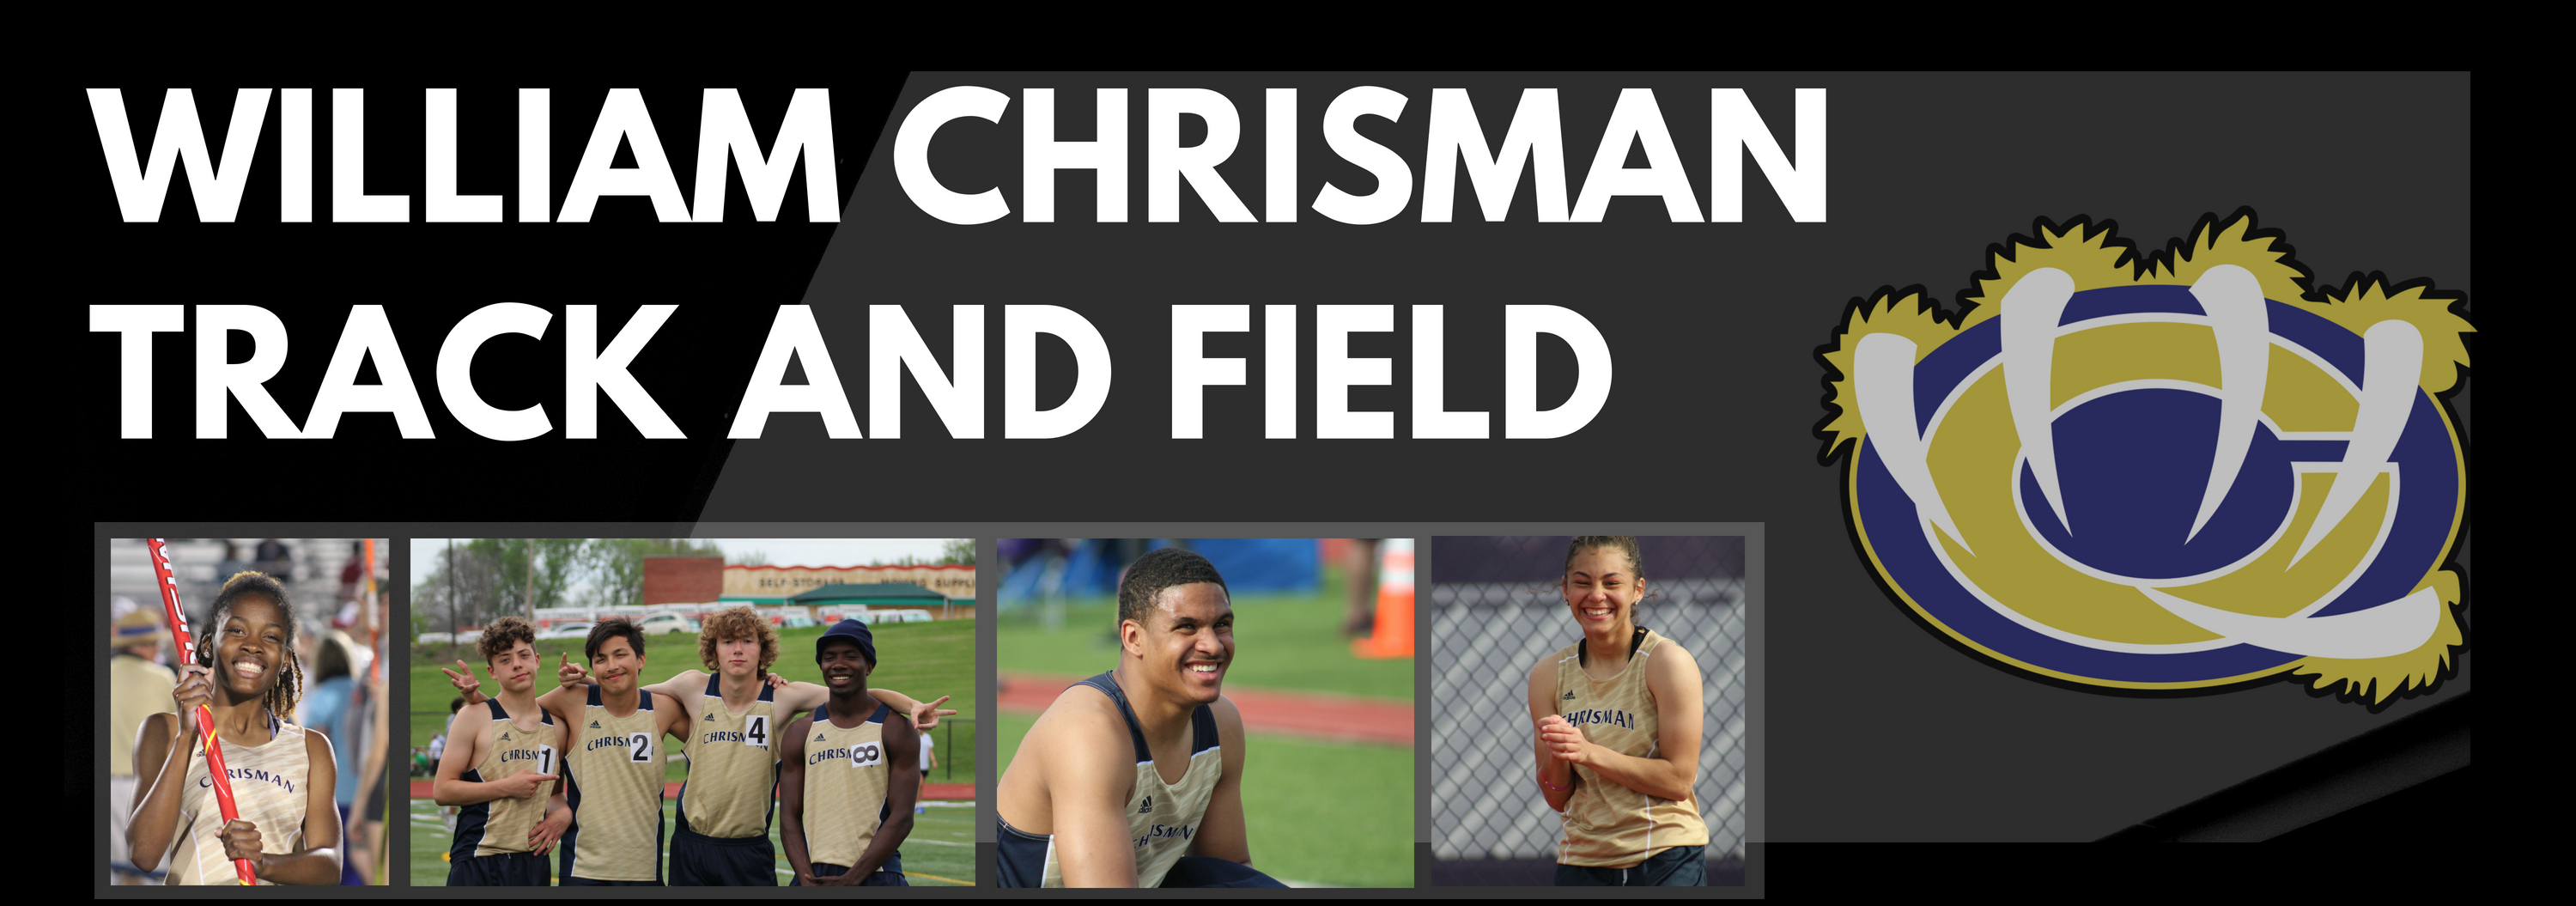 Bear Track and Field Programs and State Champions to be honored at City Council Meeting September 4th